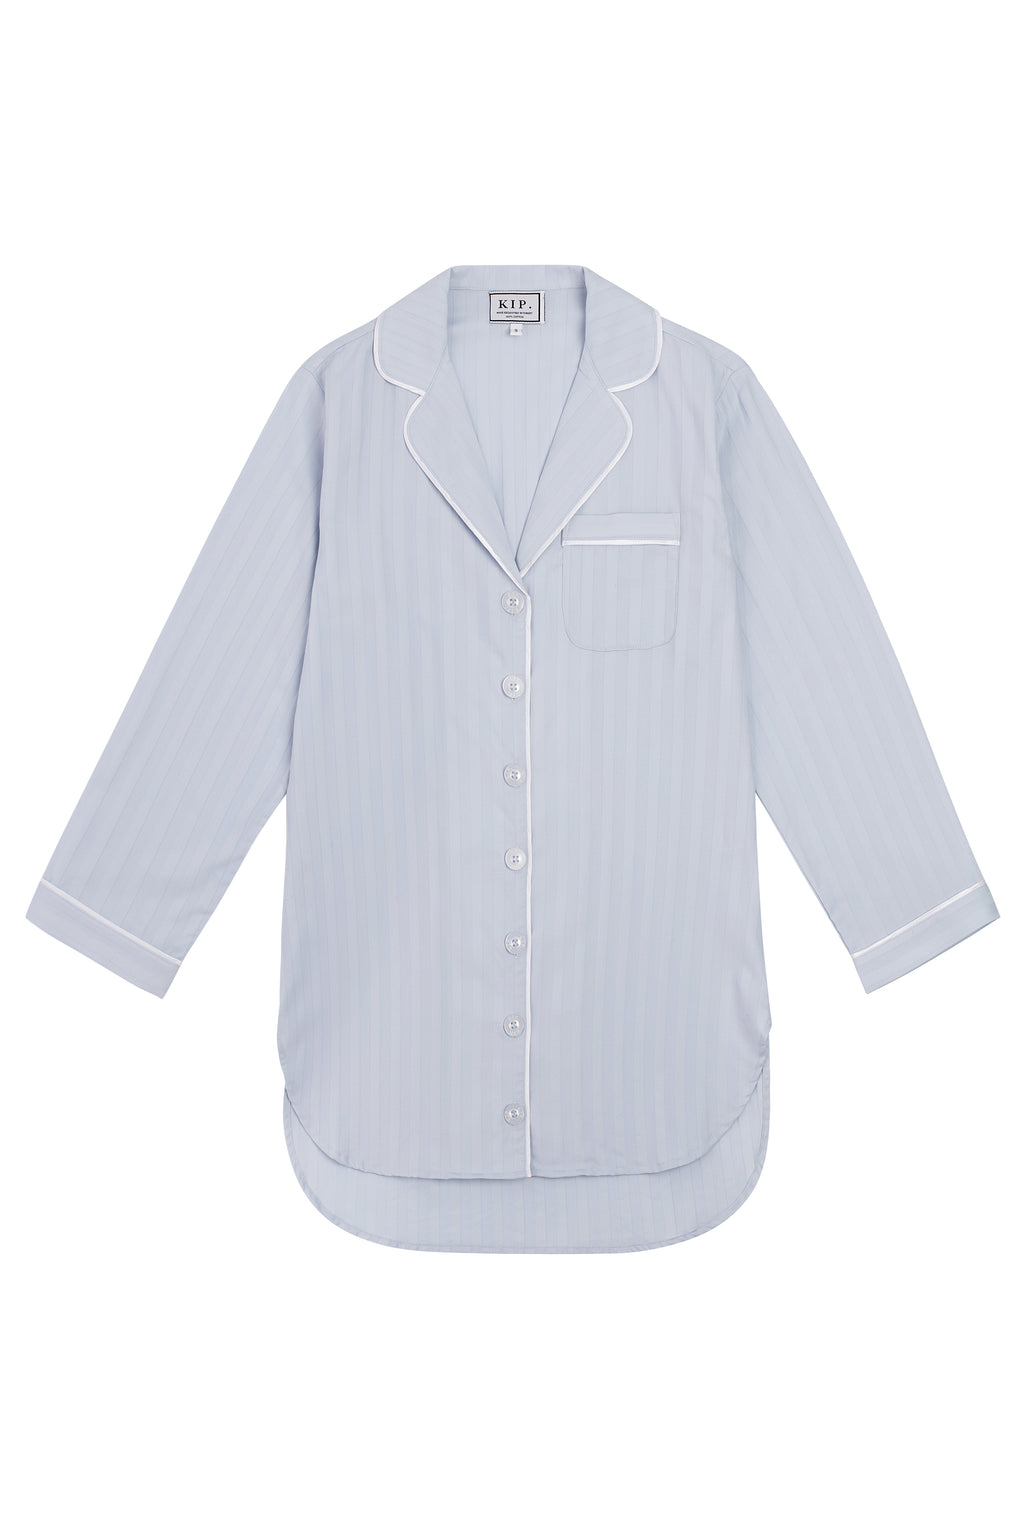 PREORDER | Premium Cotton Nightshirt in Mist Blue